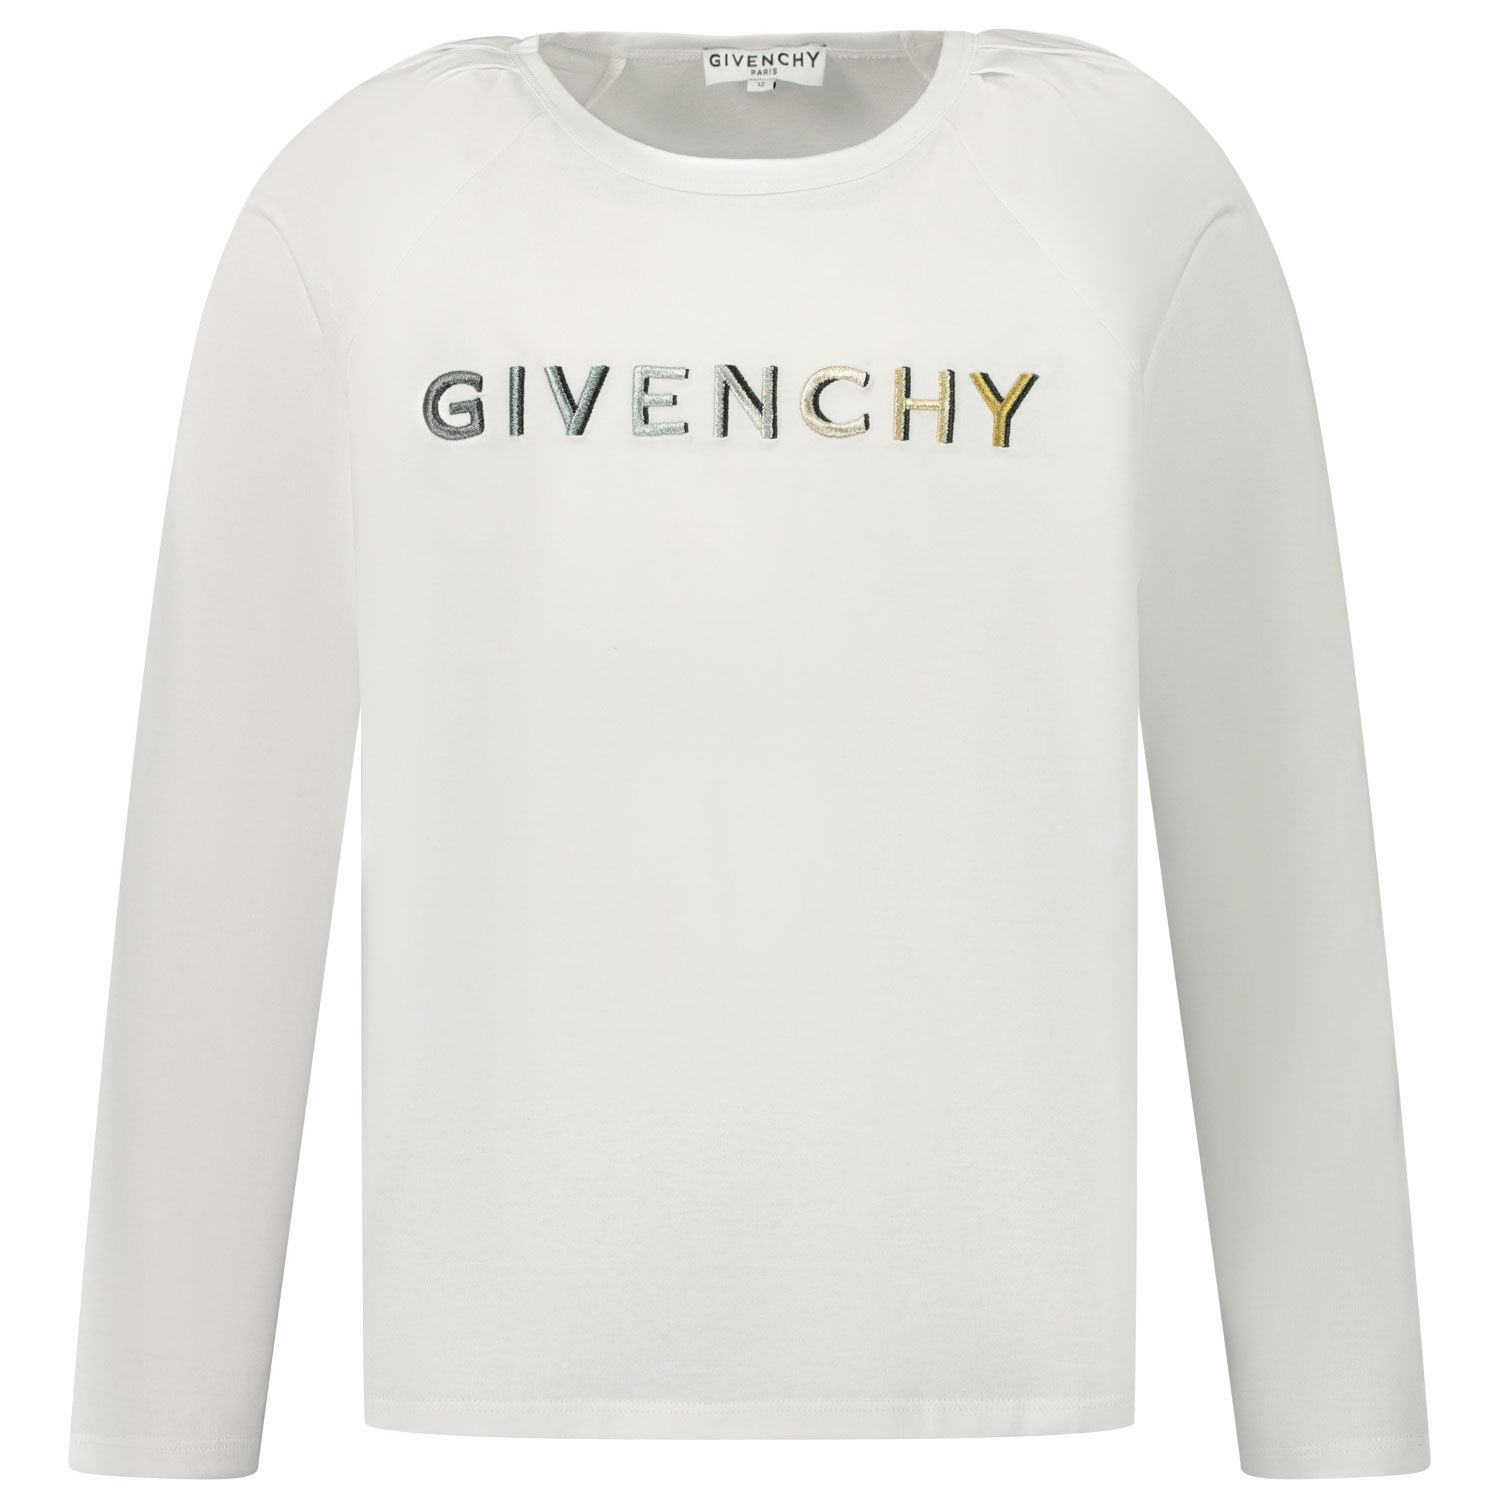 Picture of Givenchy H15180 kids t-shirt white